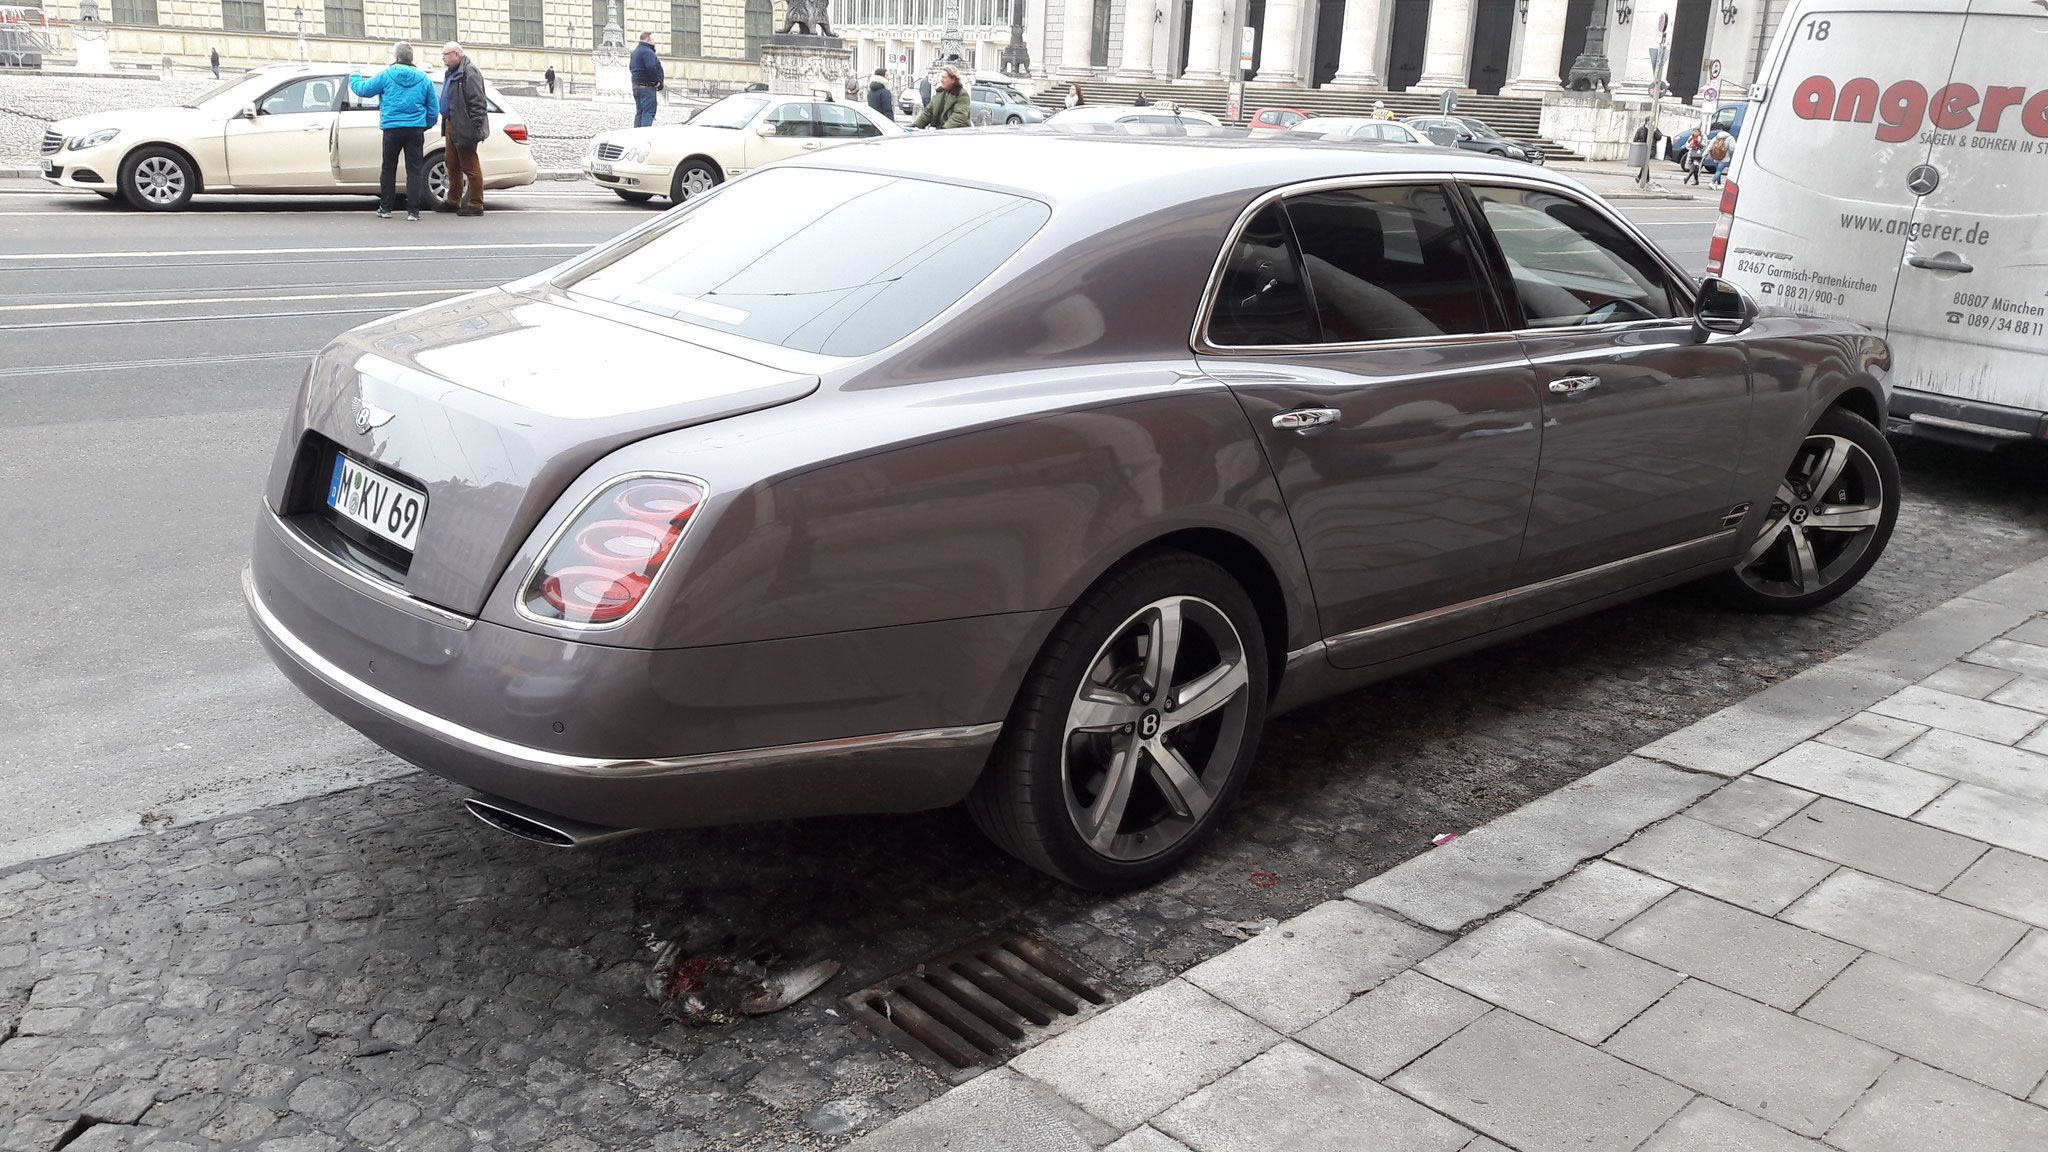 Bentley Mulsanne - M-KV-69